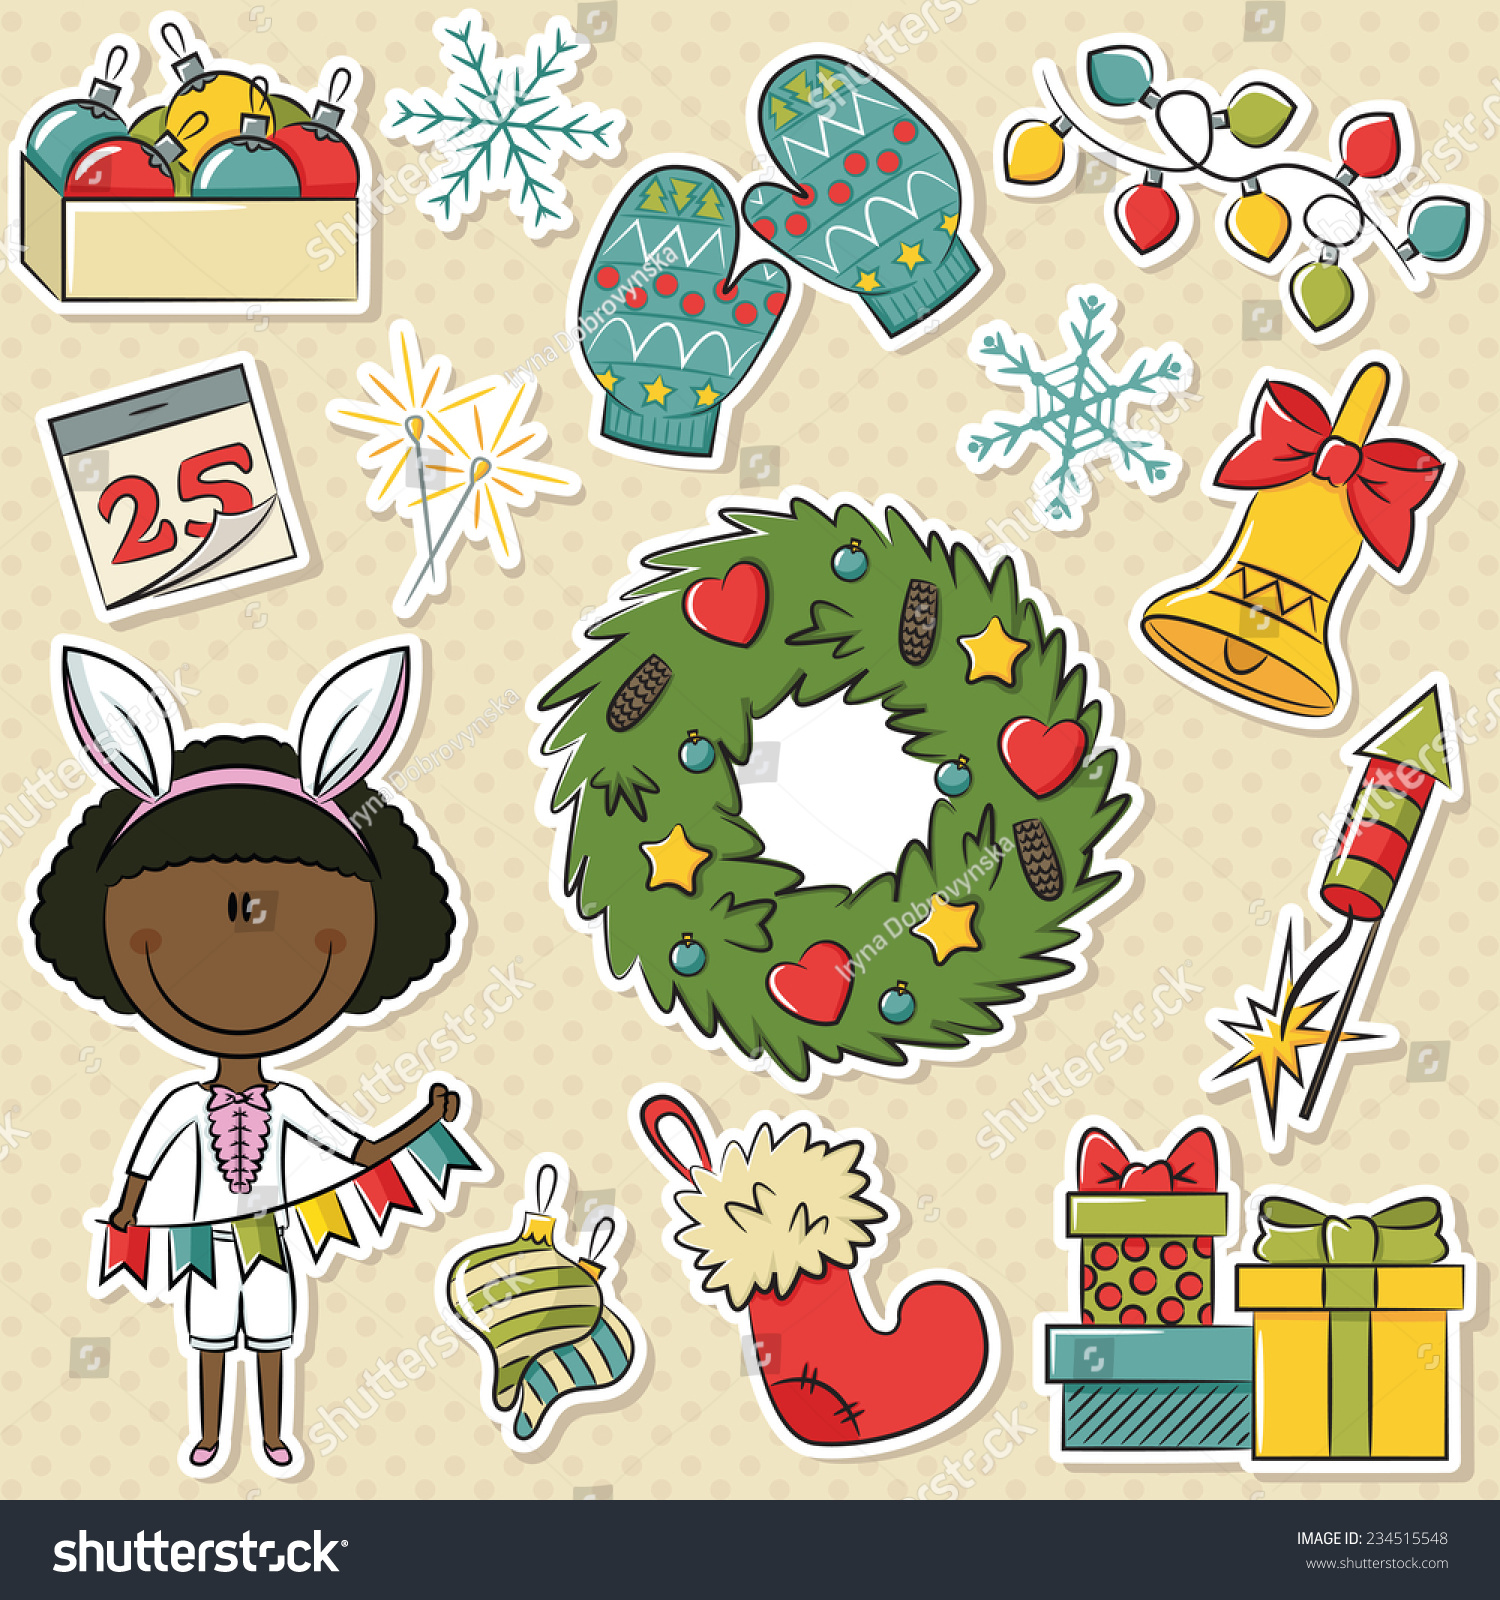 Cute African American Girl Christmas Gifts Decorations Stock Vector ...